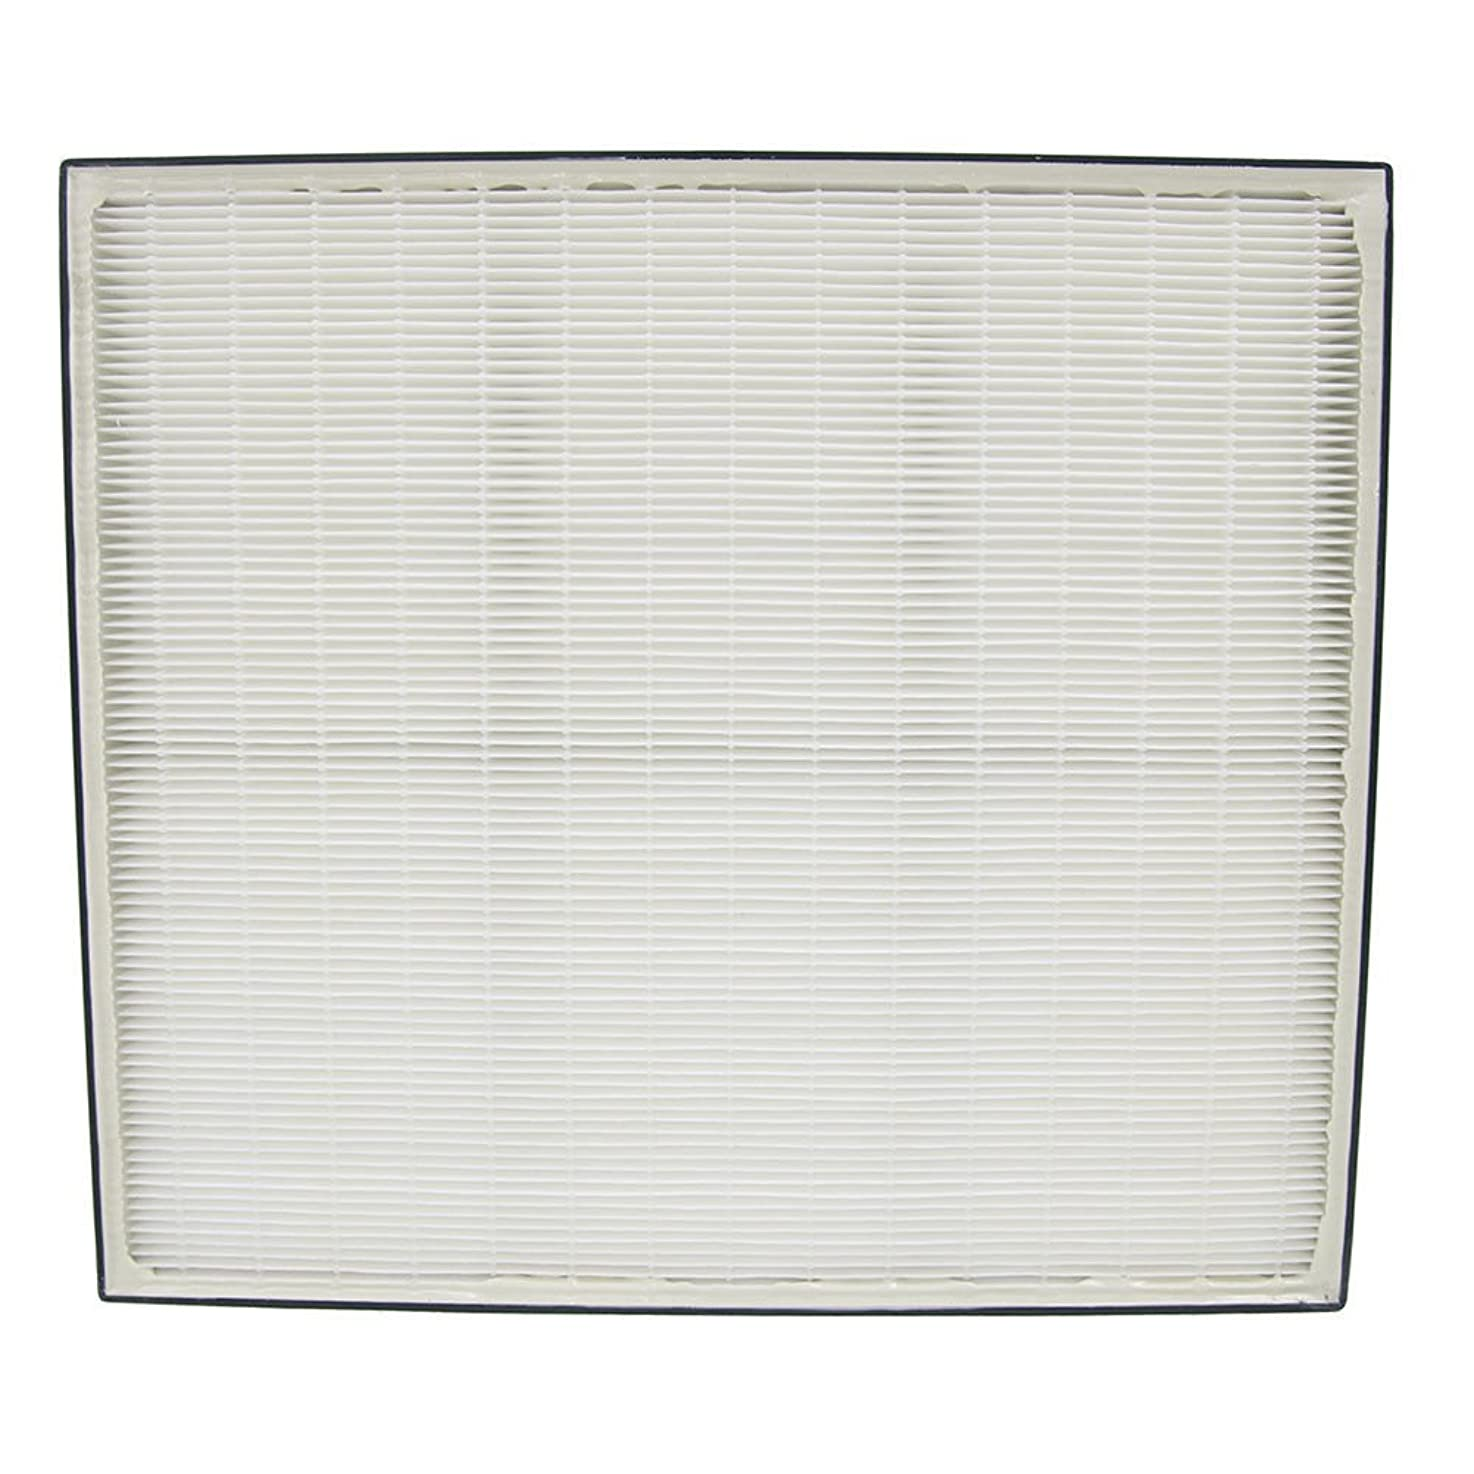 Replacement Filter for Hunter True HEPA Air Purifier 30940